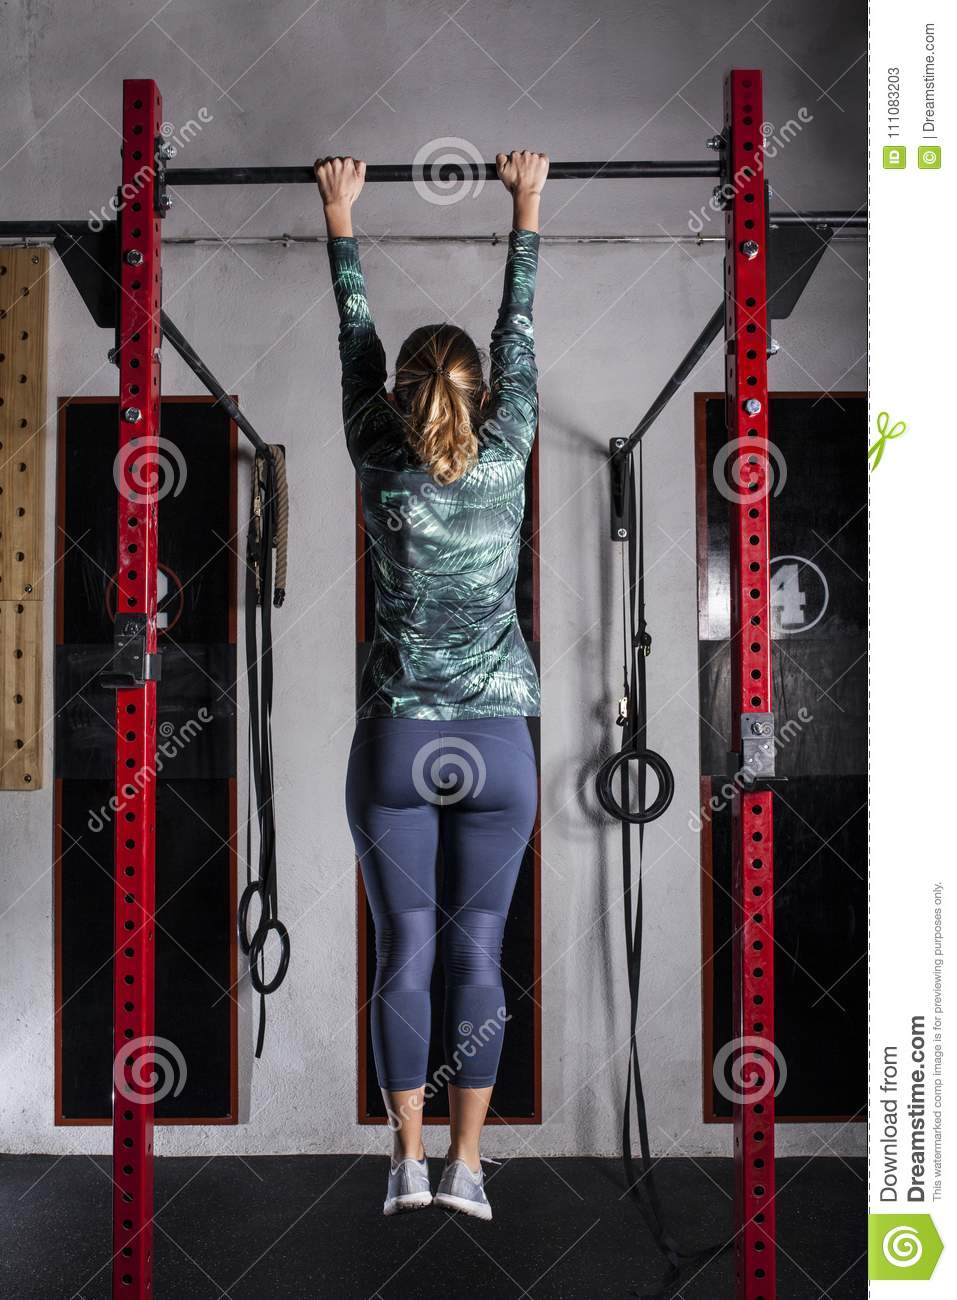 Woman training pull-up